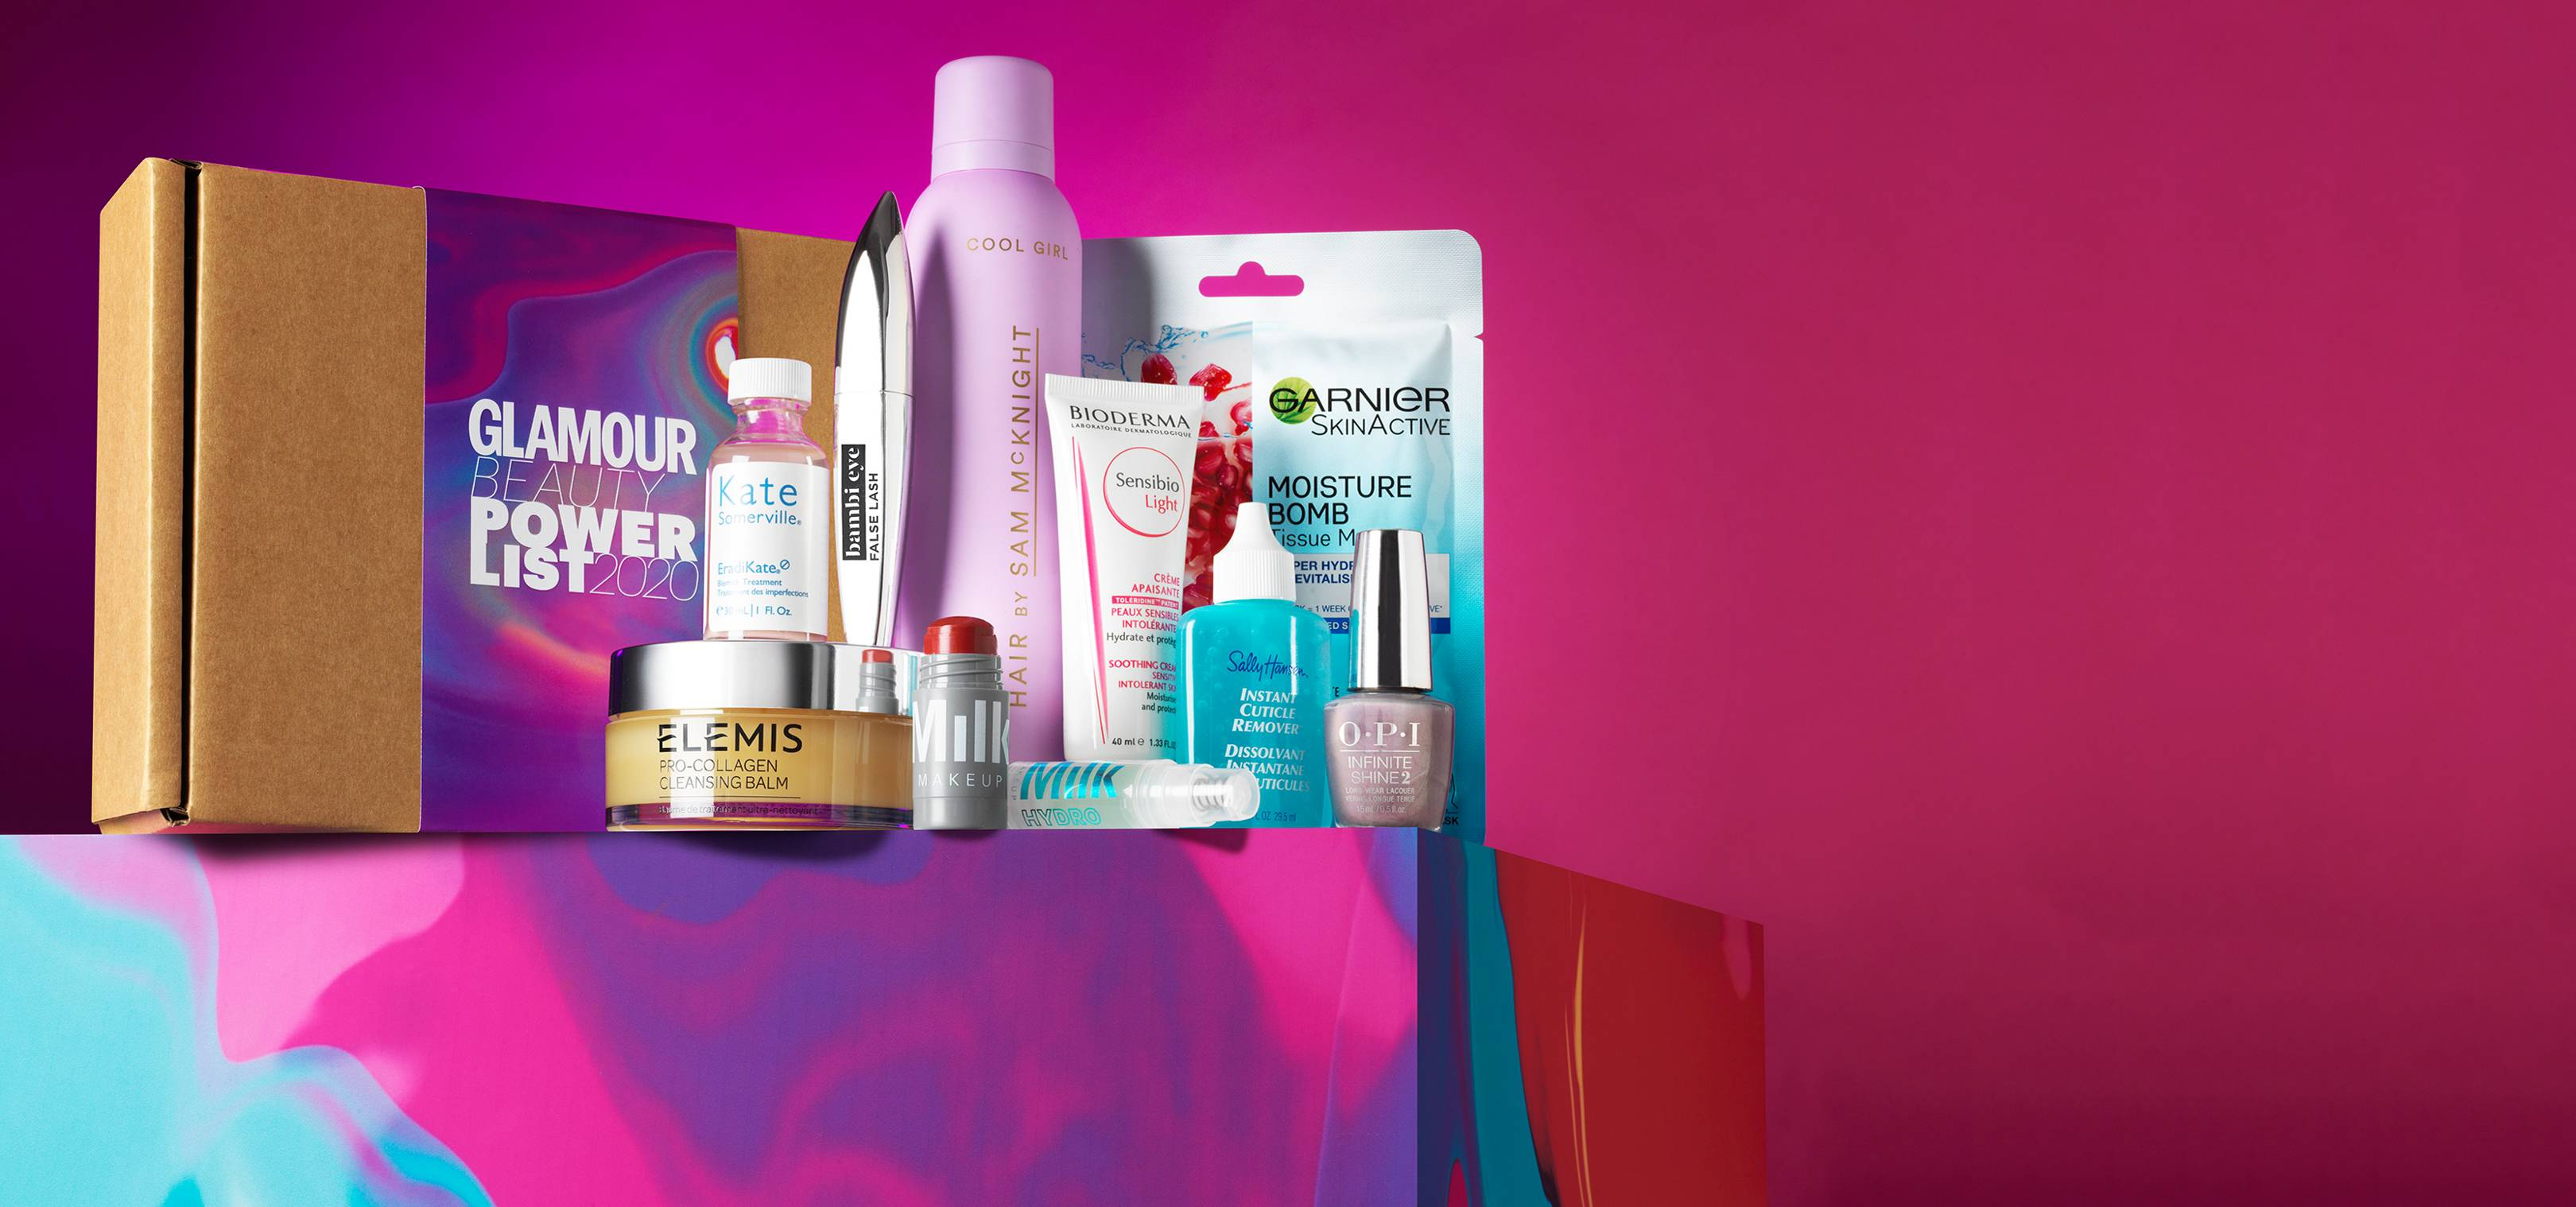 GLAMOUR's Power List Beauty Box has landed – and it's packed with award-winning treats worth over £153 for just £24.99!